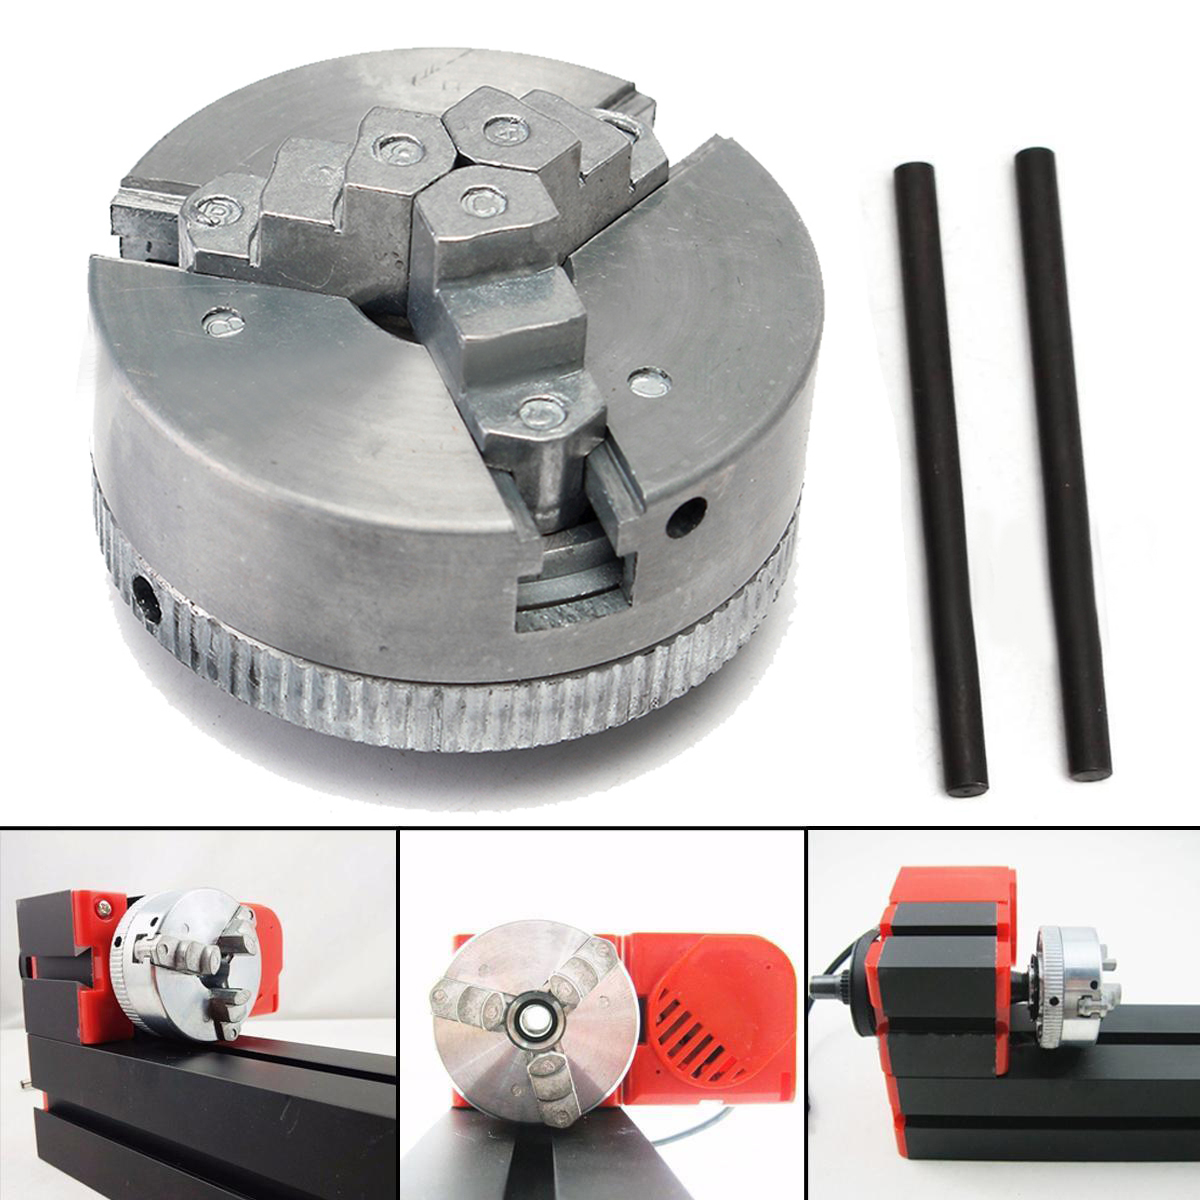 1pc 3 Jaw Lathe Chuck Metal Self Centering Hardened Chuck M12x1 45mm + 2pcs Lock Rods with Shock Resistance 3 3 jaw lathe chuck k11 80 k11 80 80mm manual chuck self centering lathe parts diy metal lathe lathe accessories